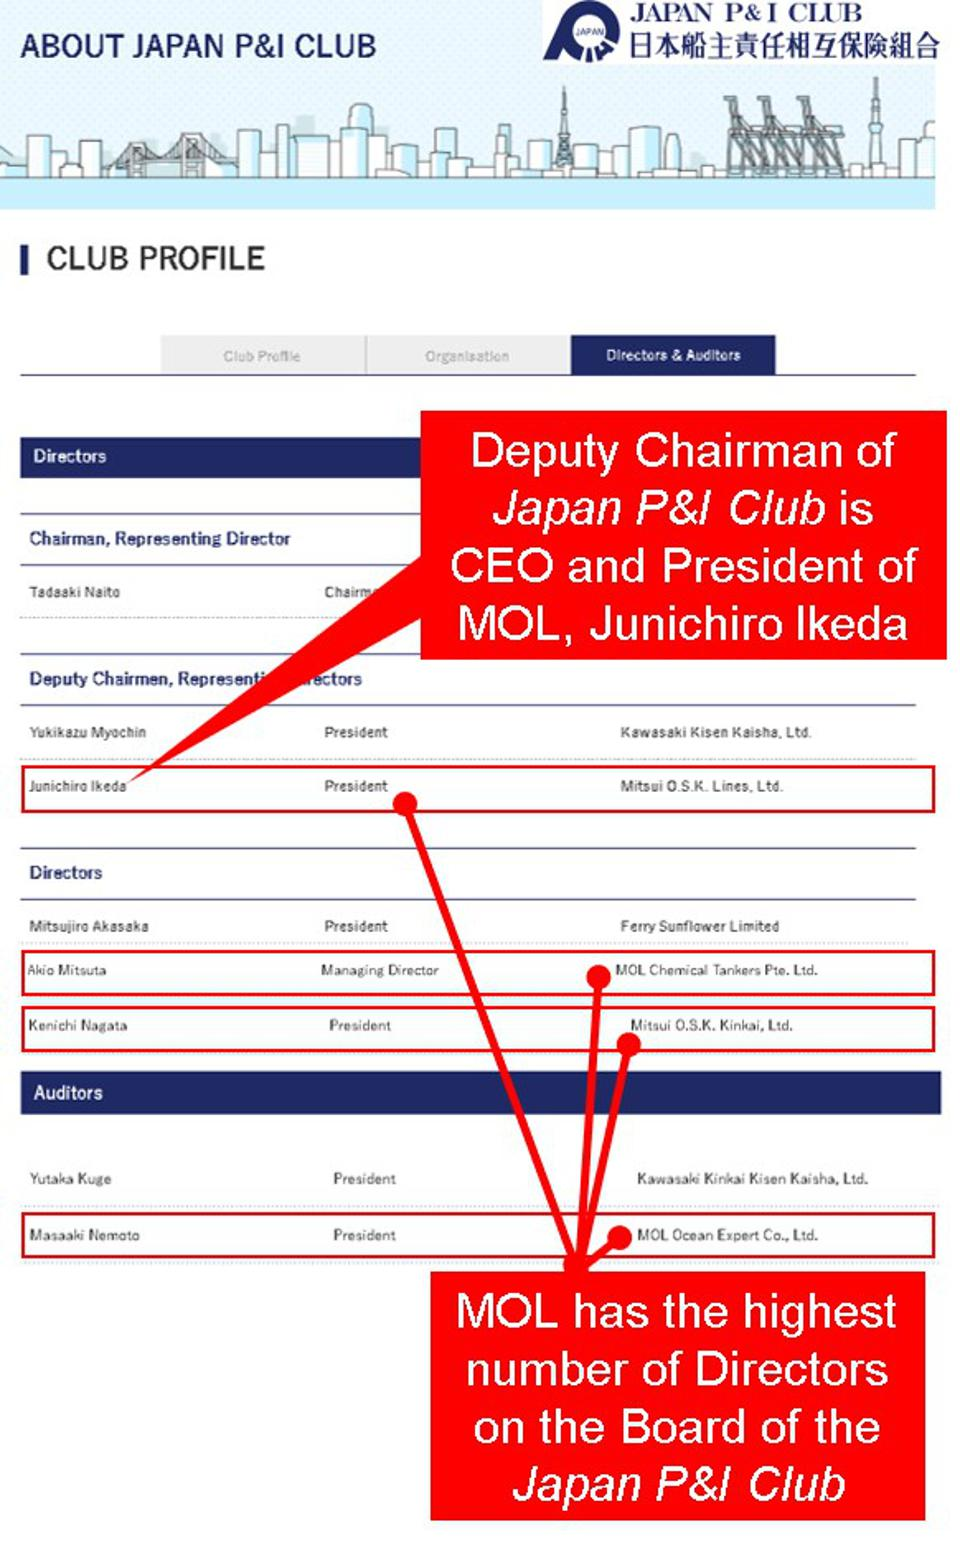 Abbreviated list of Japan P&I Club Directors showing four of the 22 external board members (20%) are employees of MOL